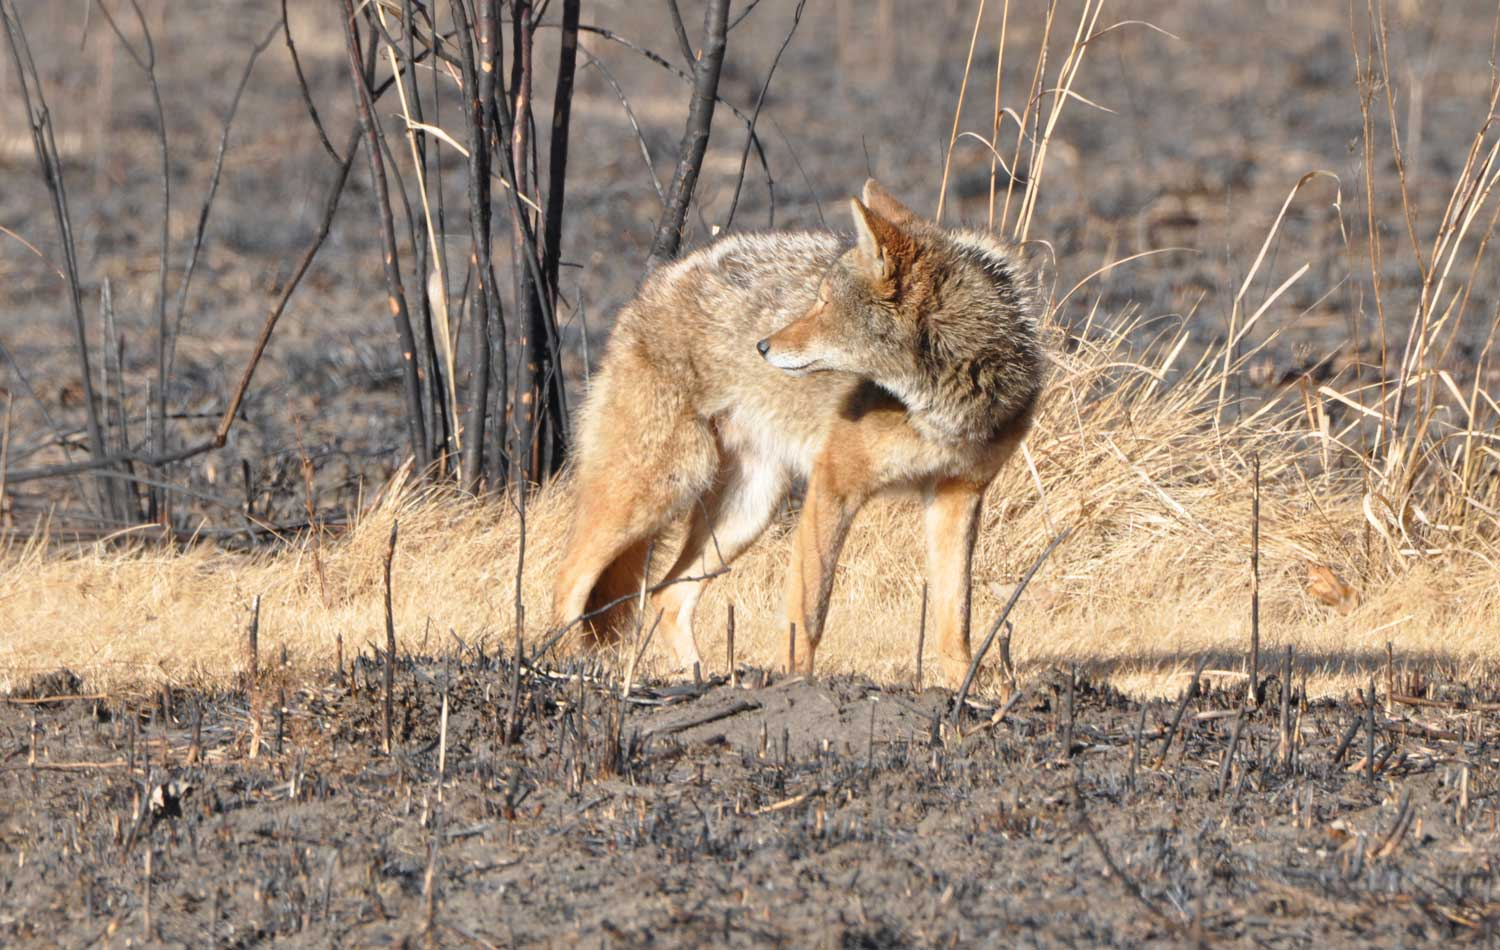 Photo for: What You Need to Know About Coyote Mating Season